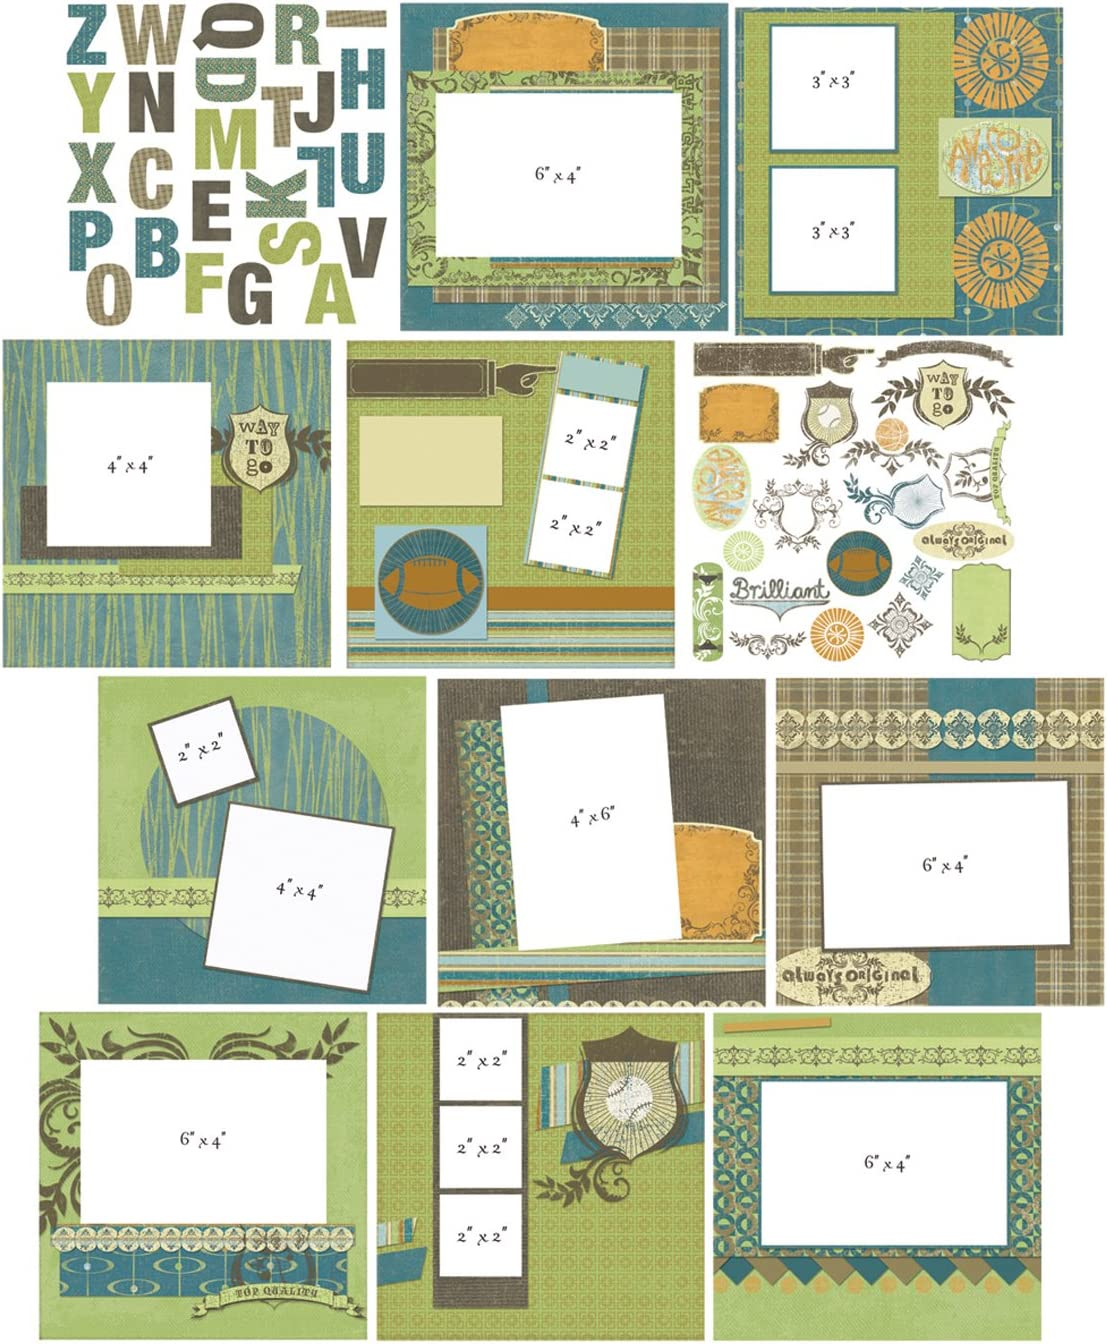 Baby Provo Craft YourStory 8-Inch-by-8-Inch Album Kit